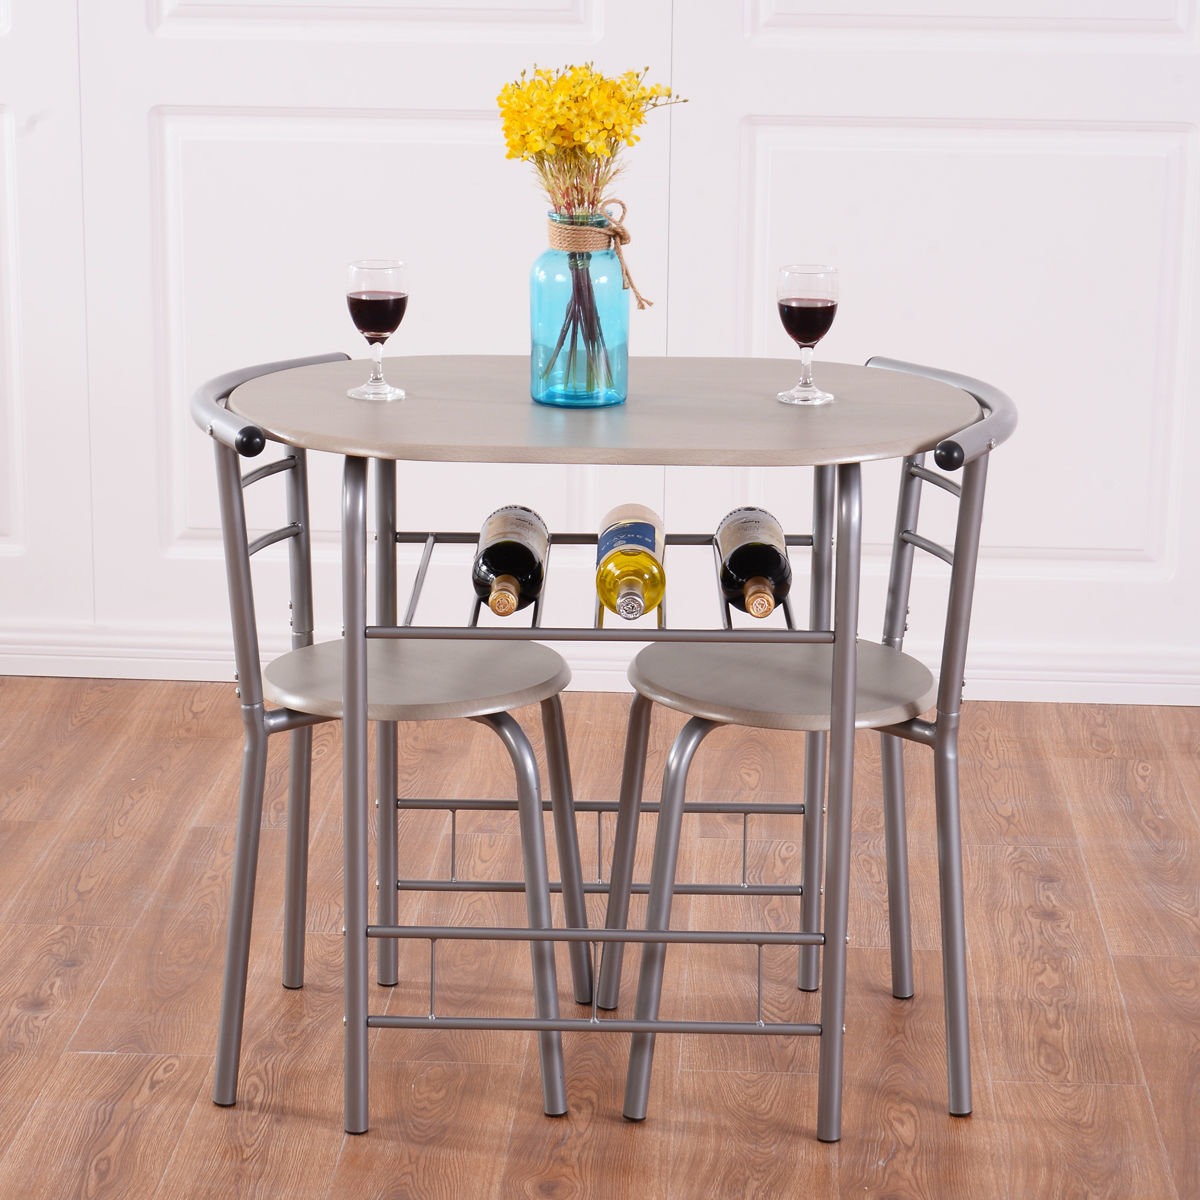 Isolde 3 Piece Dining Sets Pertaining To Well Liked Winston Porter Strock 3 Piece Dining Set & Reviews (View 9 of 25)